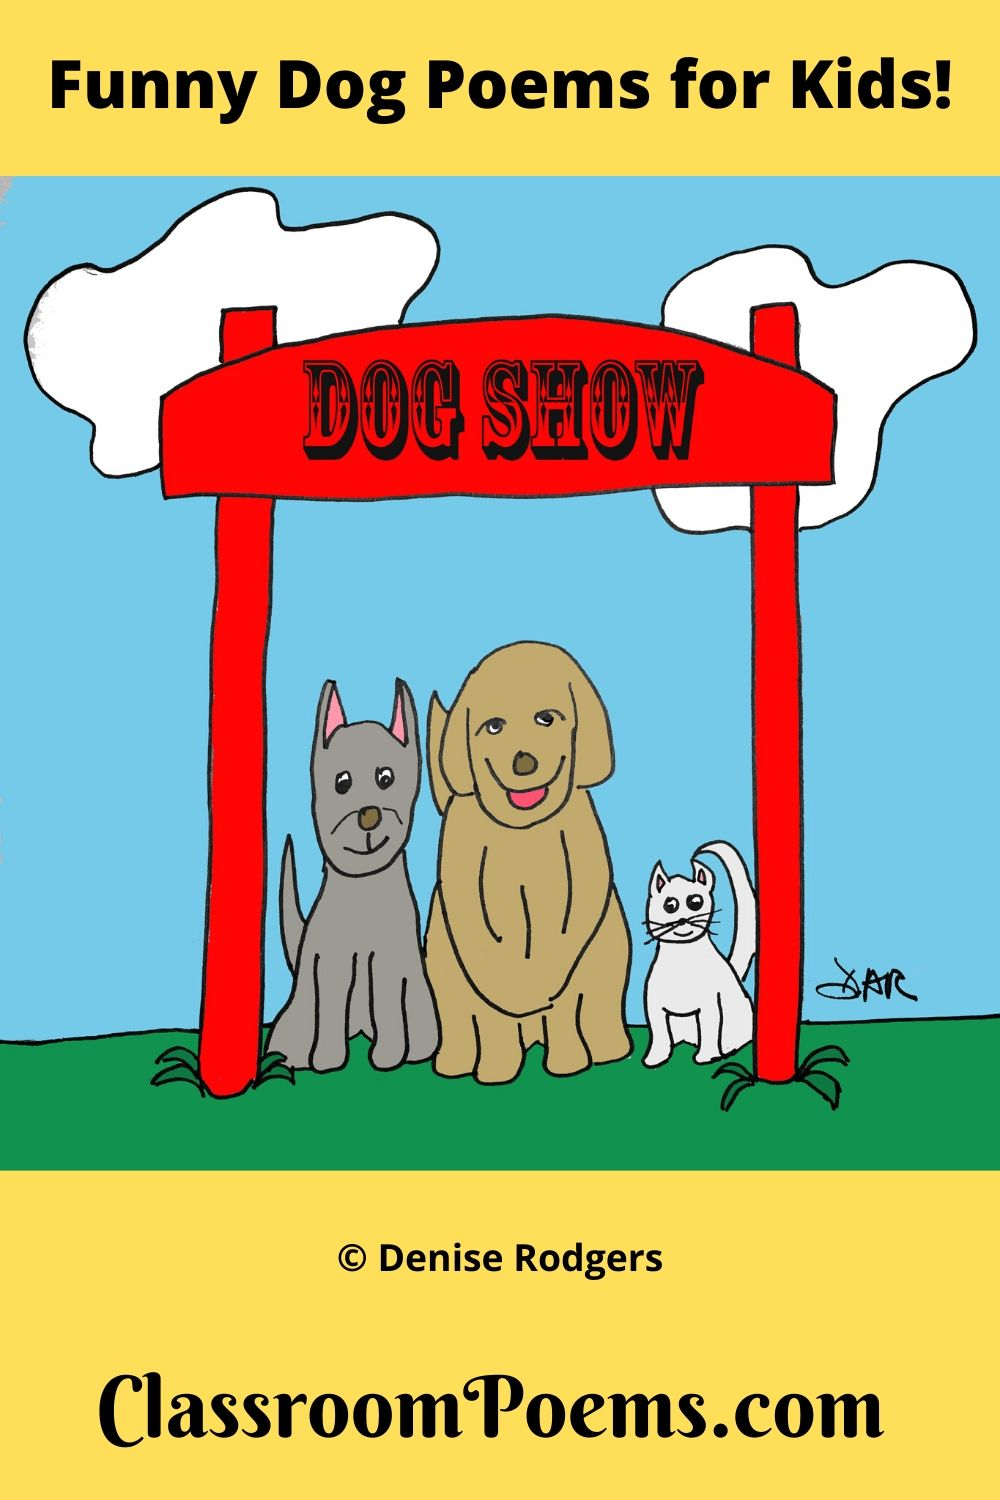 Dog Show cartoon. Dog Show drawing. Funny dog poems.